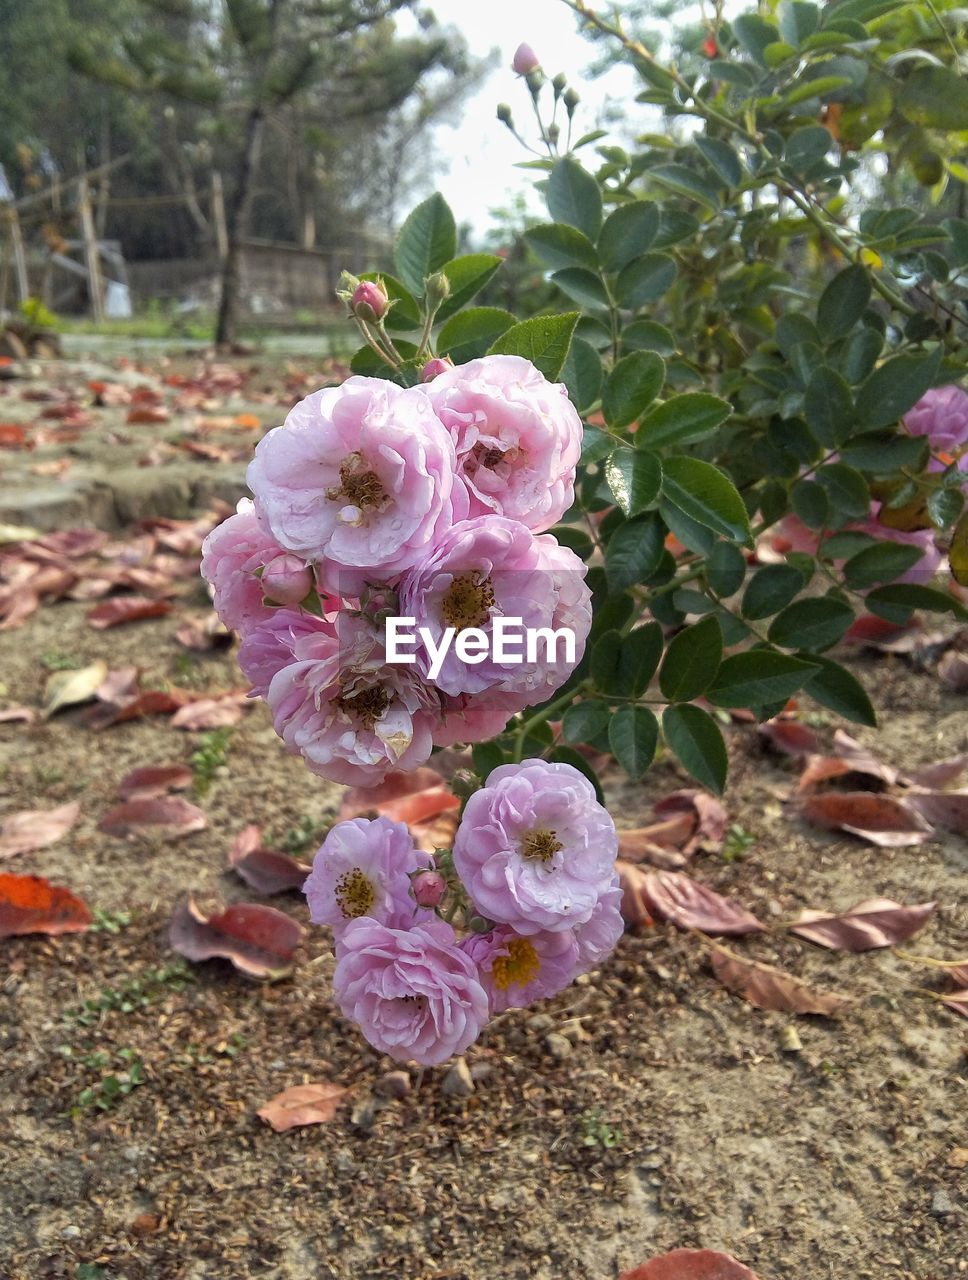 flower, nature, growth, no people, plant, pink color, petal, beauty in nature, outdoors, fragility, day, blooming, flower head, close-up, freshness